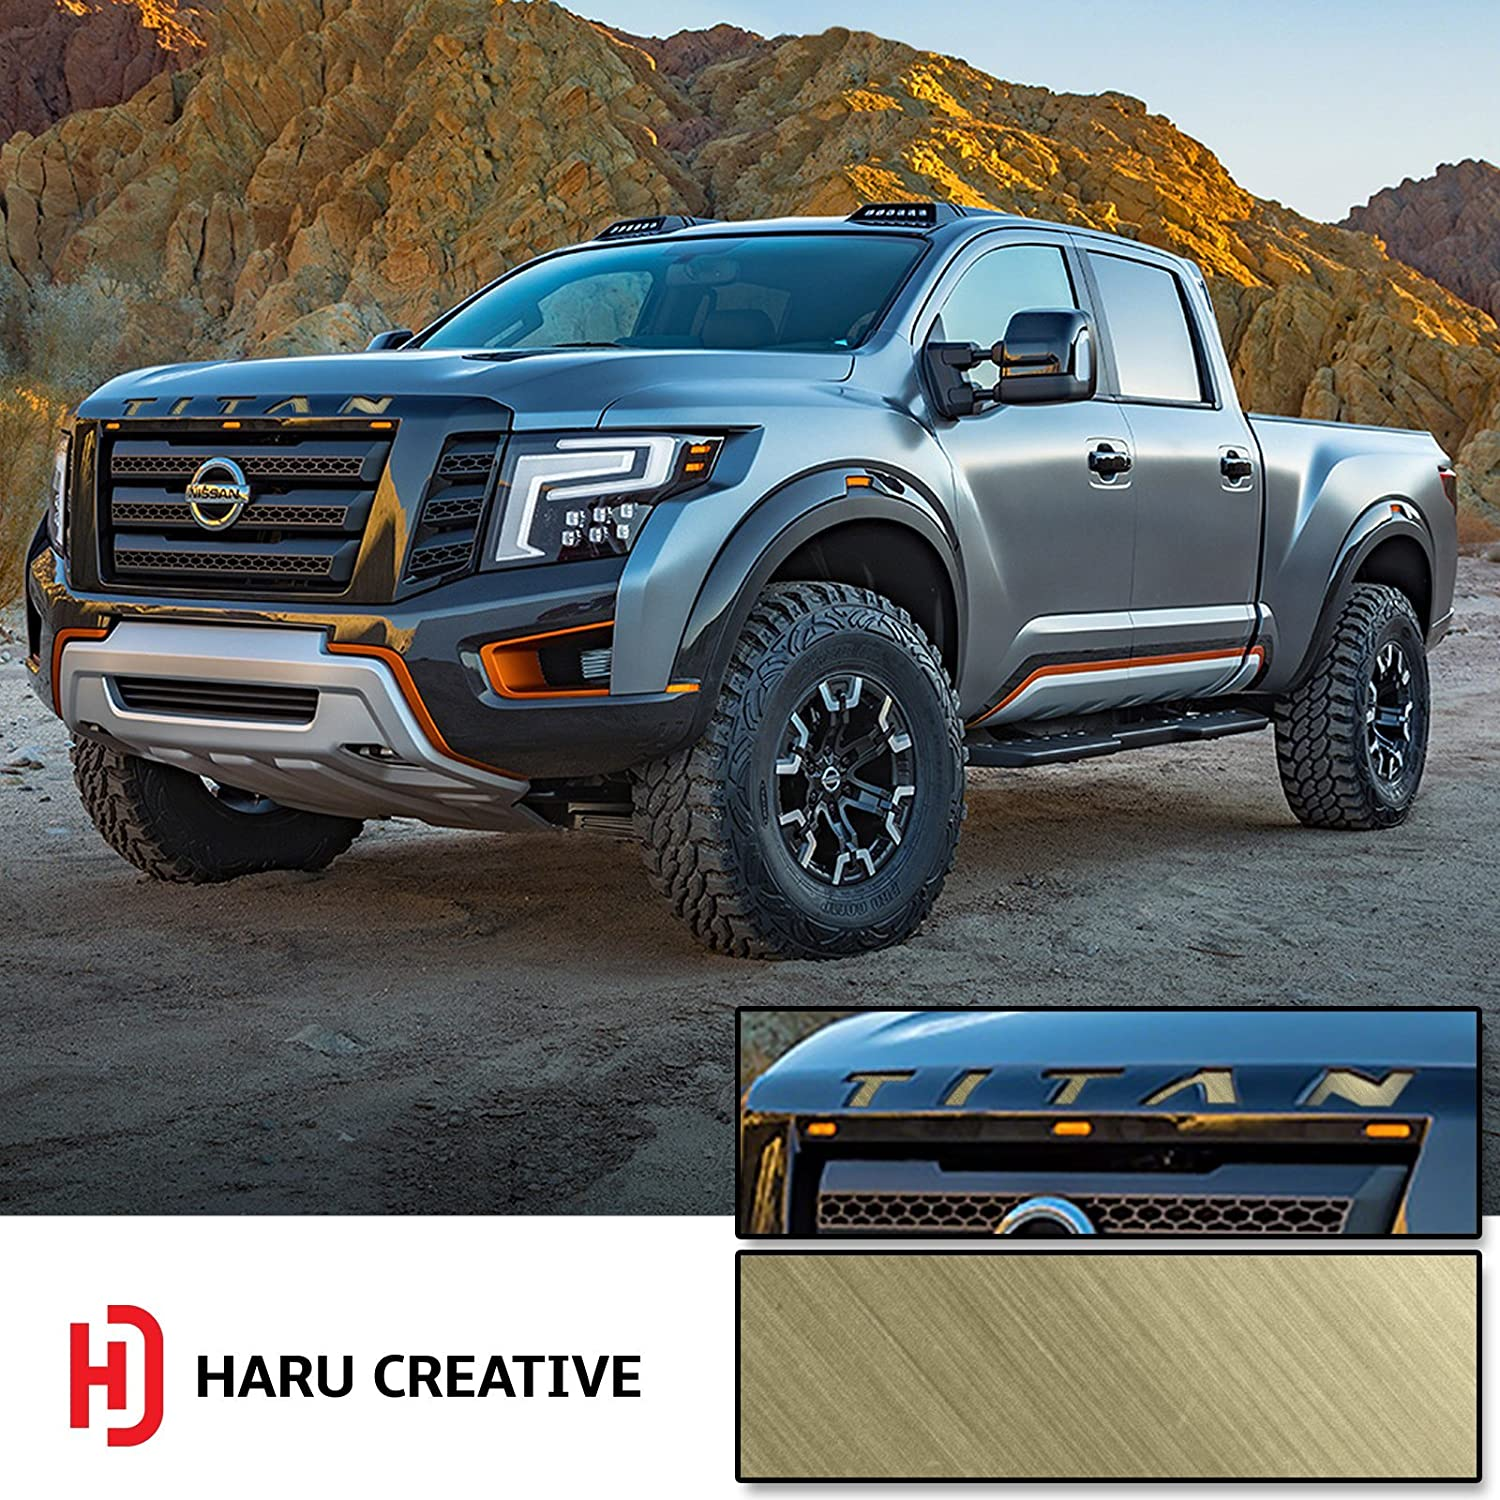 Front Hood Grille Emblem Letter Insert Overlay Vinyl Decal Sticker Compatible with and Fits Nissan Titan XD 2016 2017 2018 Metallic Brushed Aluminum Black Loyo Haru Creative